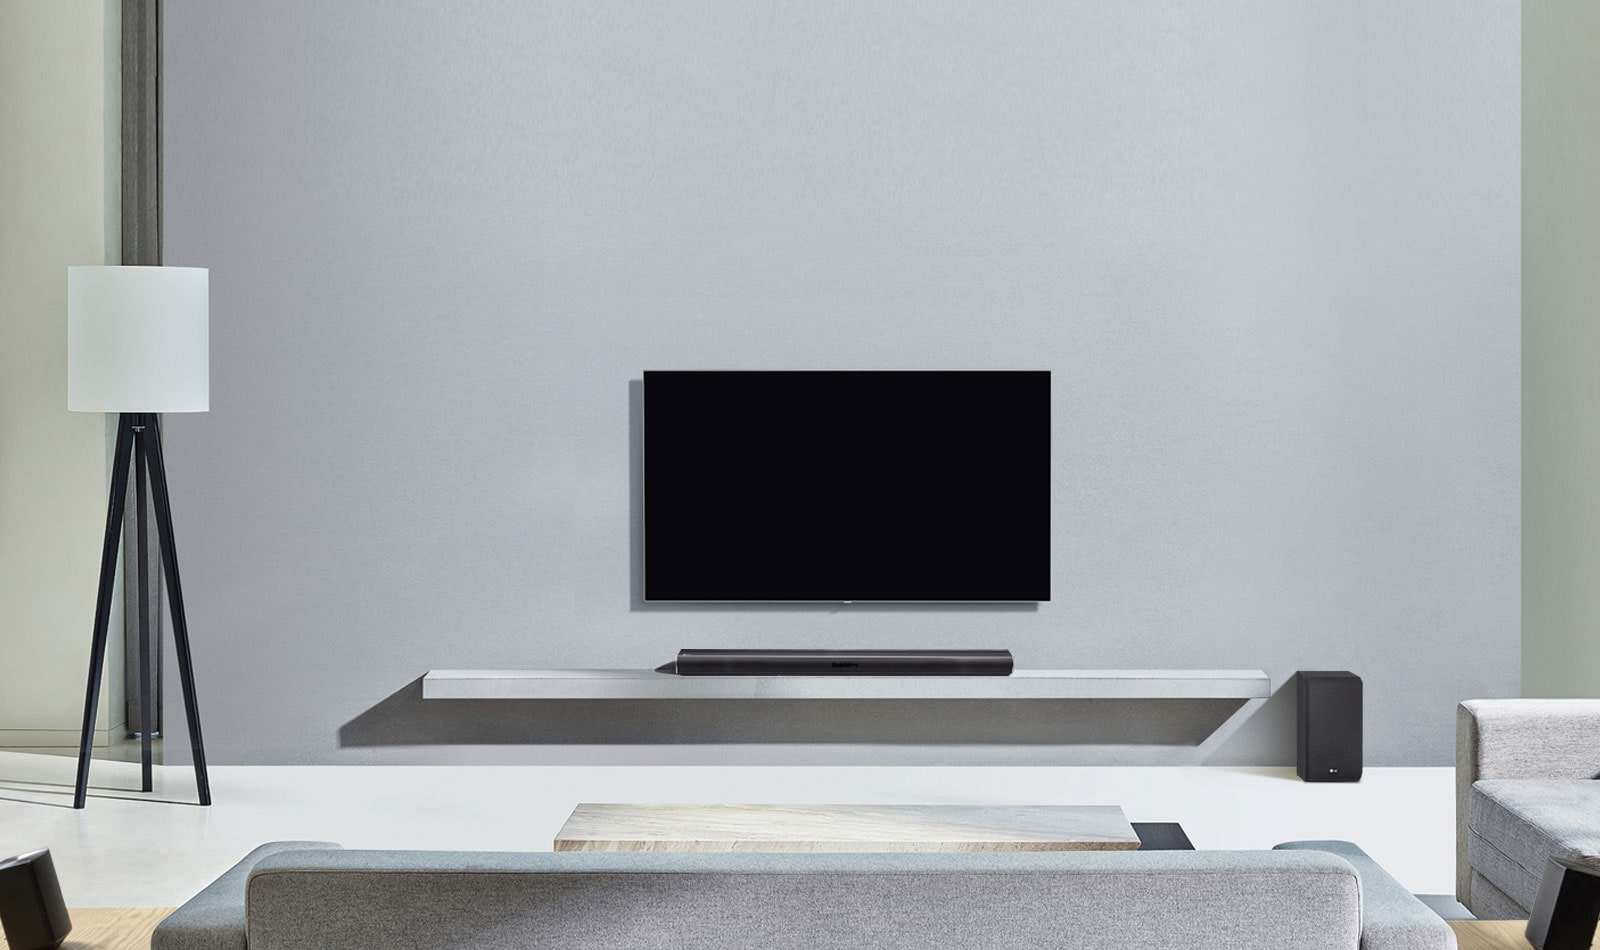 TV Matching Design, complementary perfection